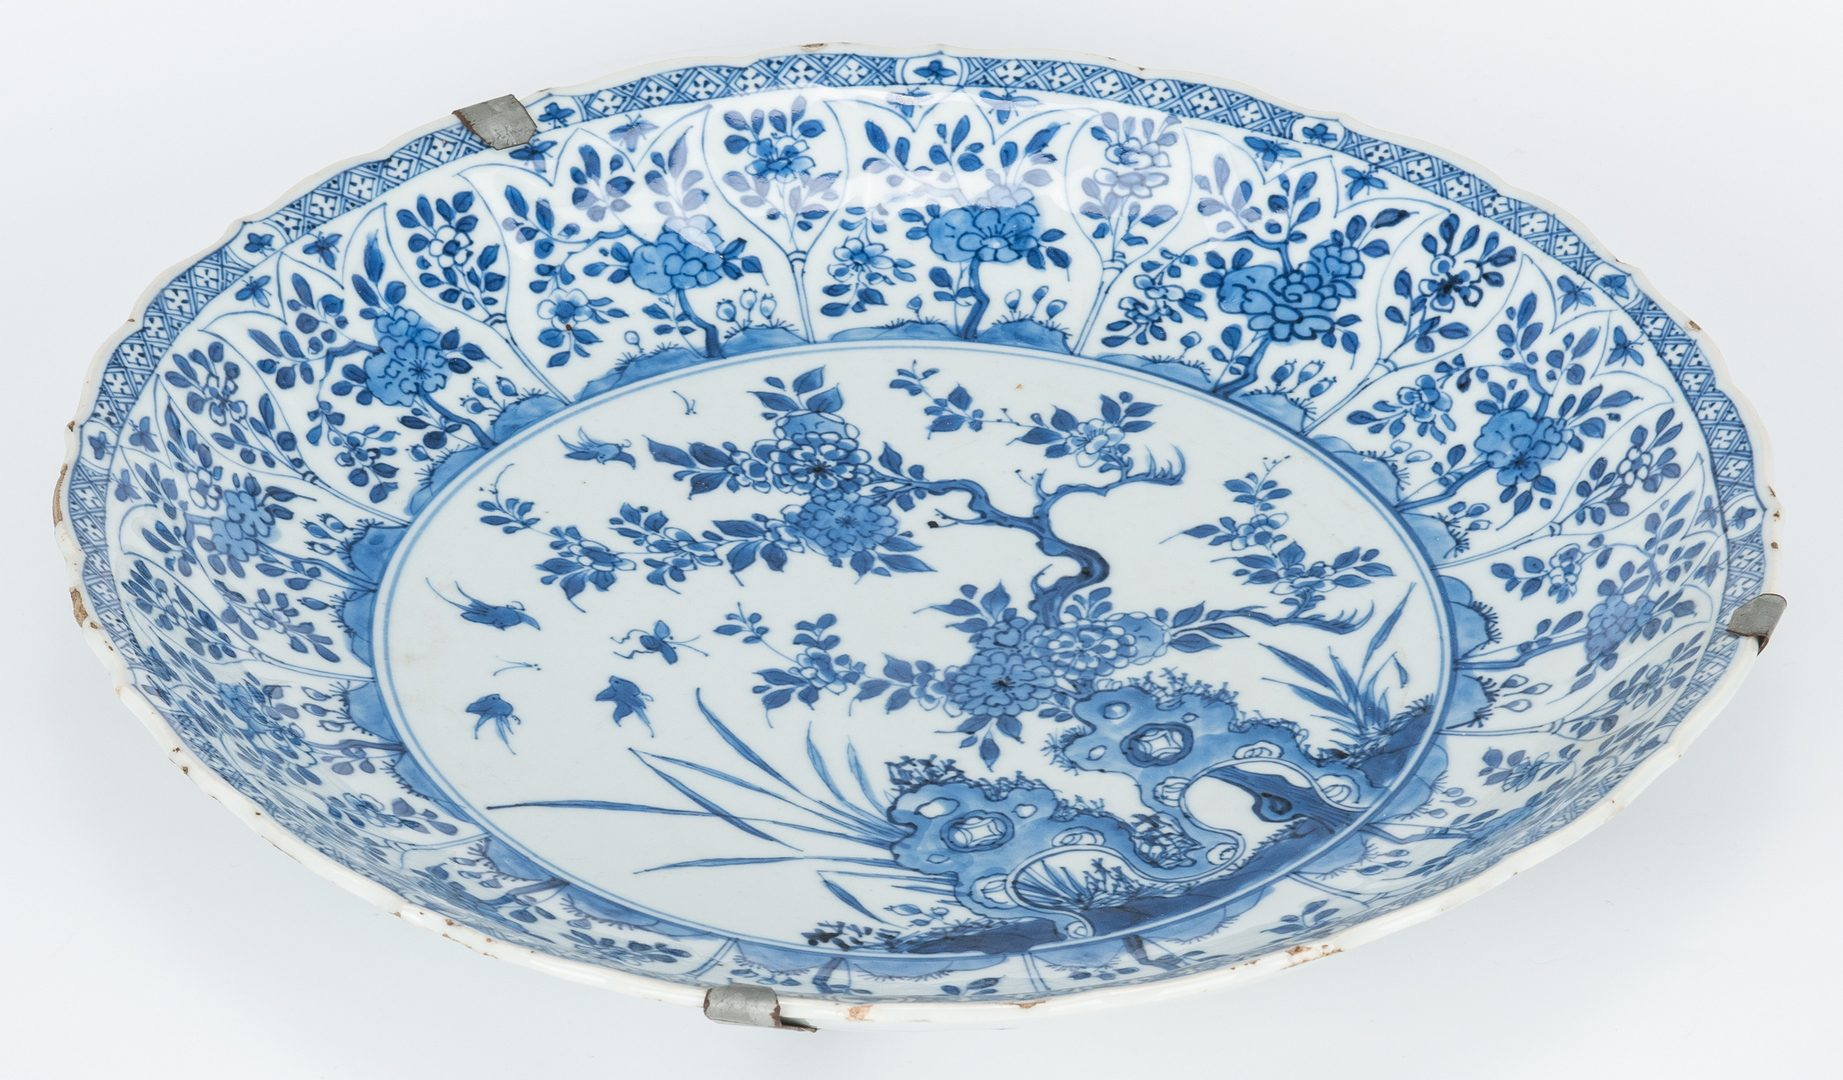 Lot 20: Large Blue & White Charger, Qing Dynasty